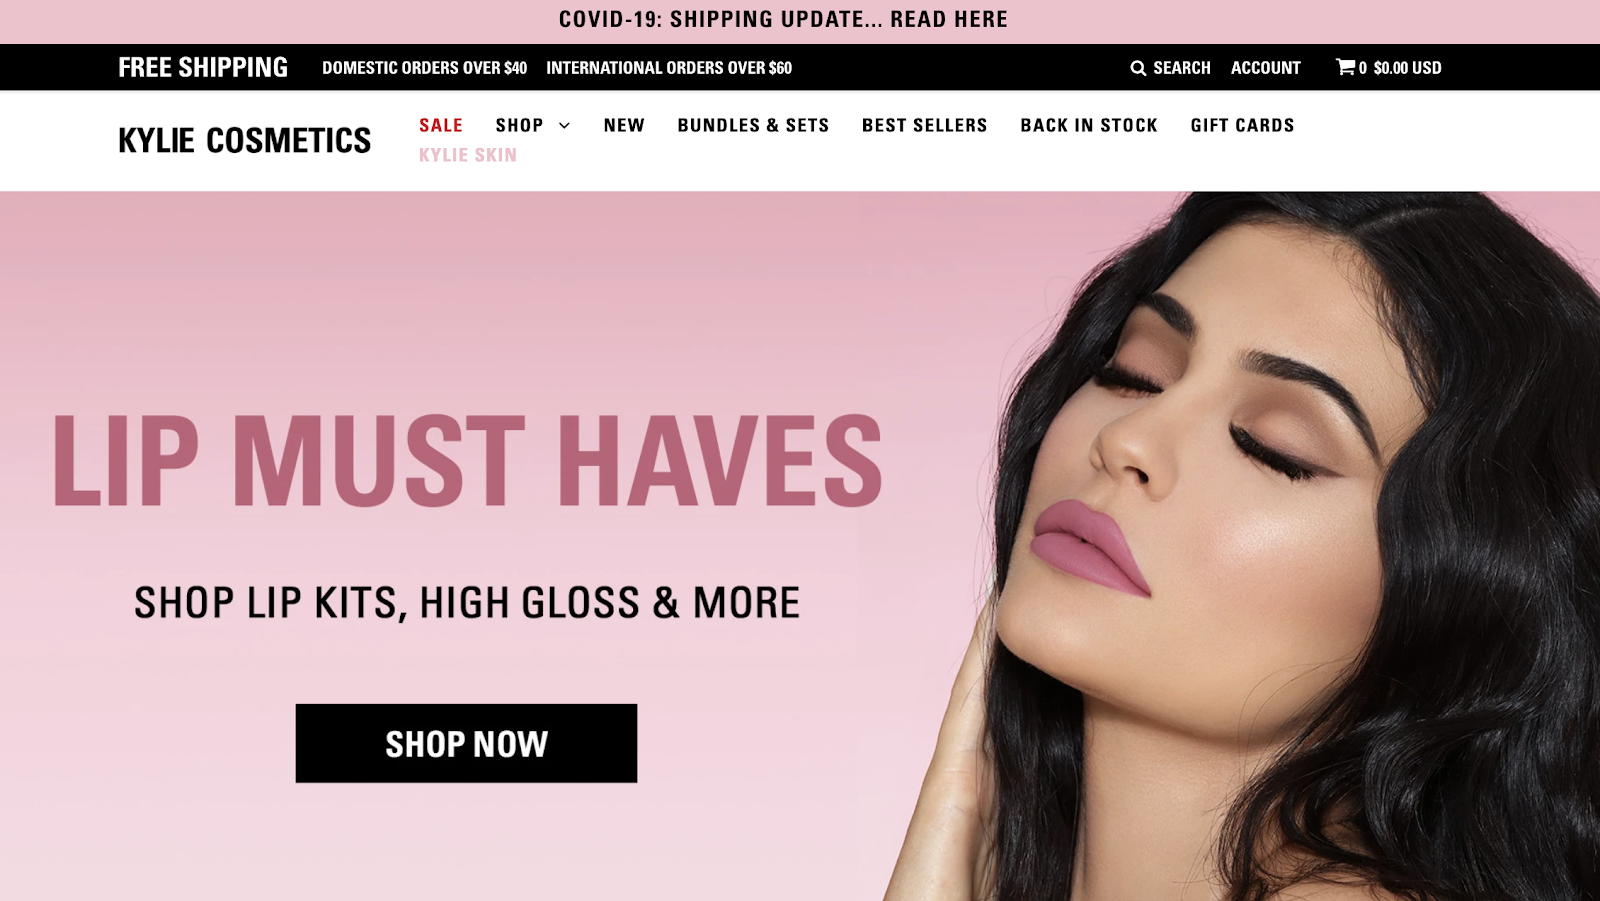 Free shipping offer on kylie costmetics website